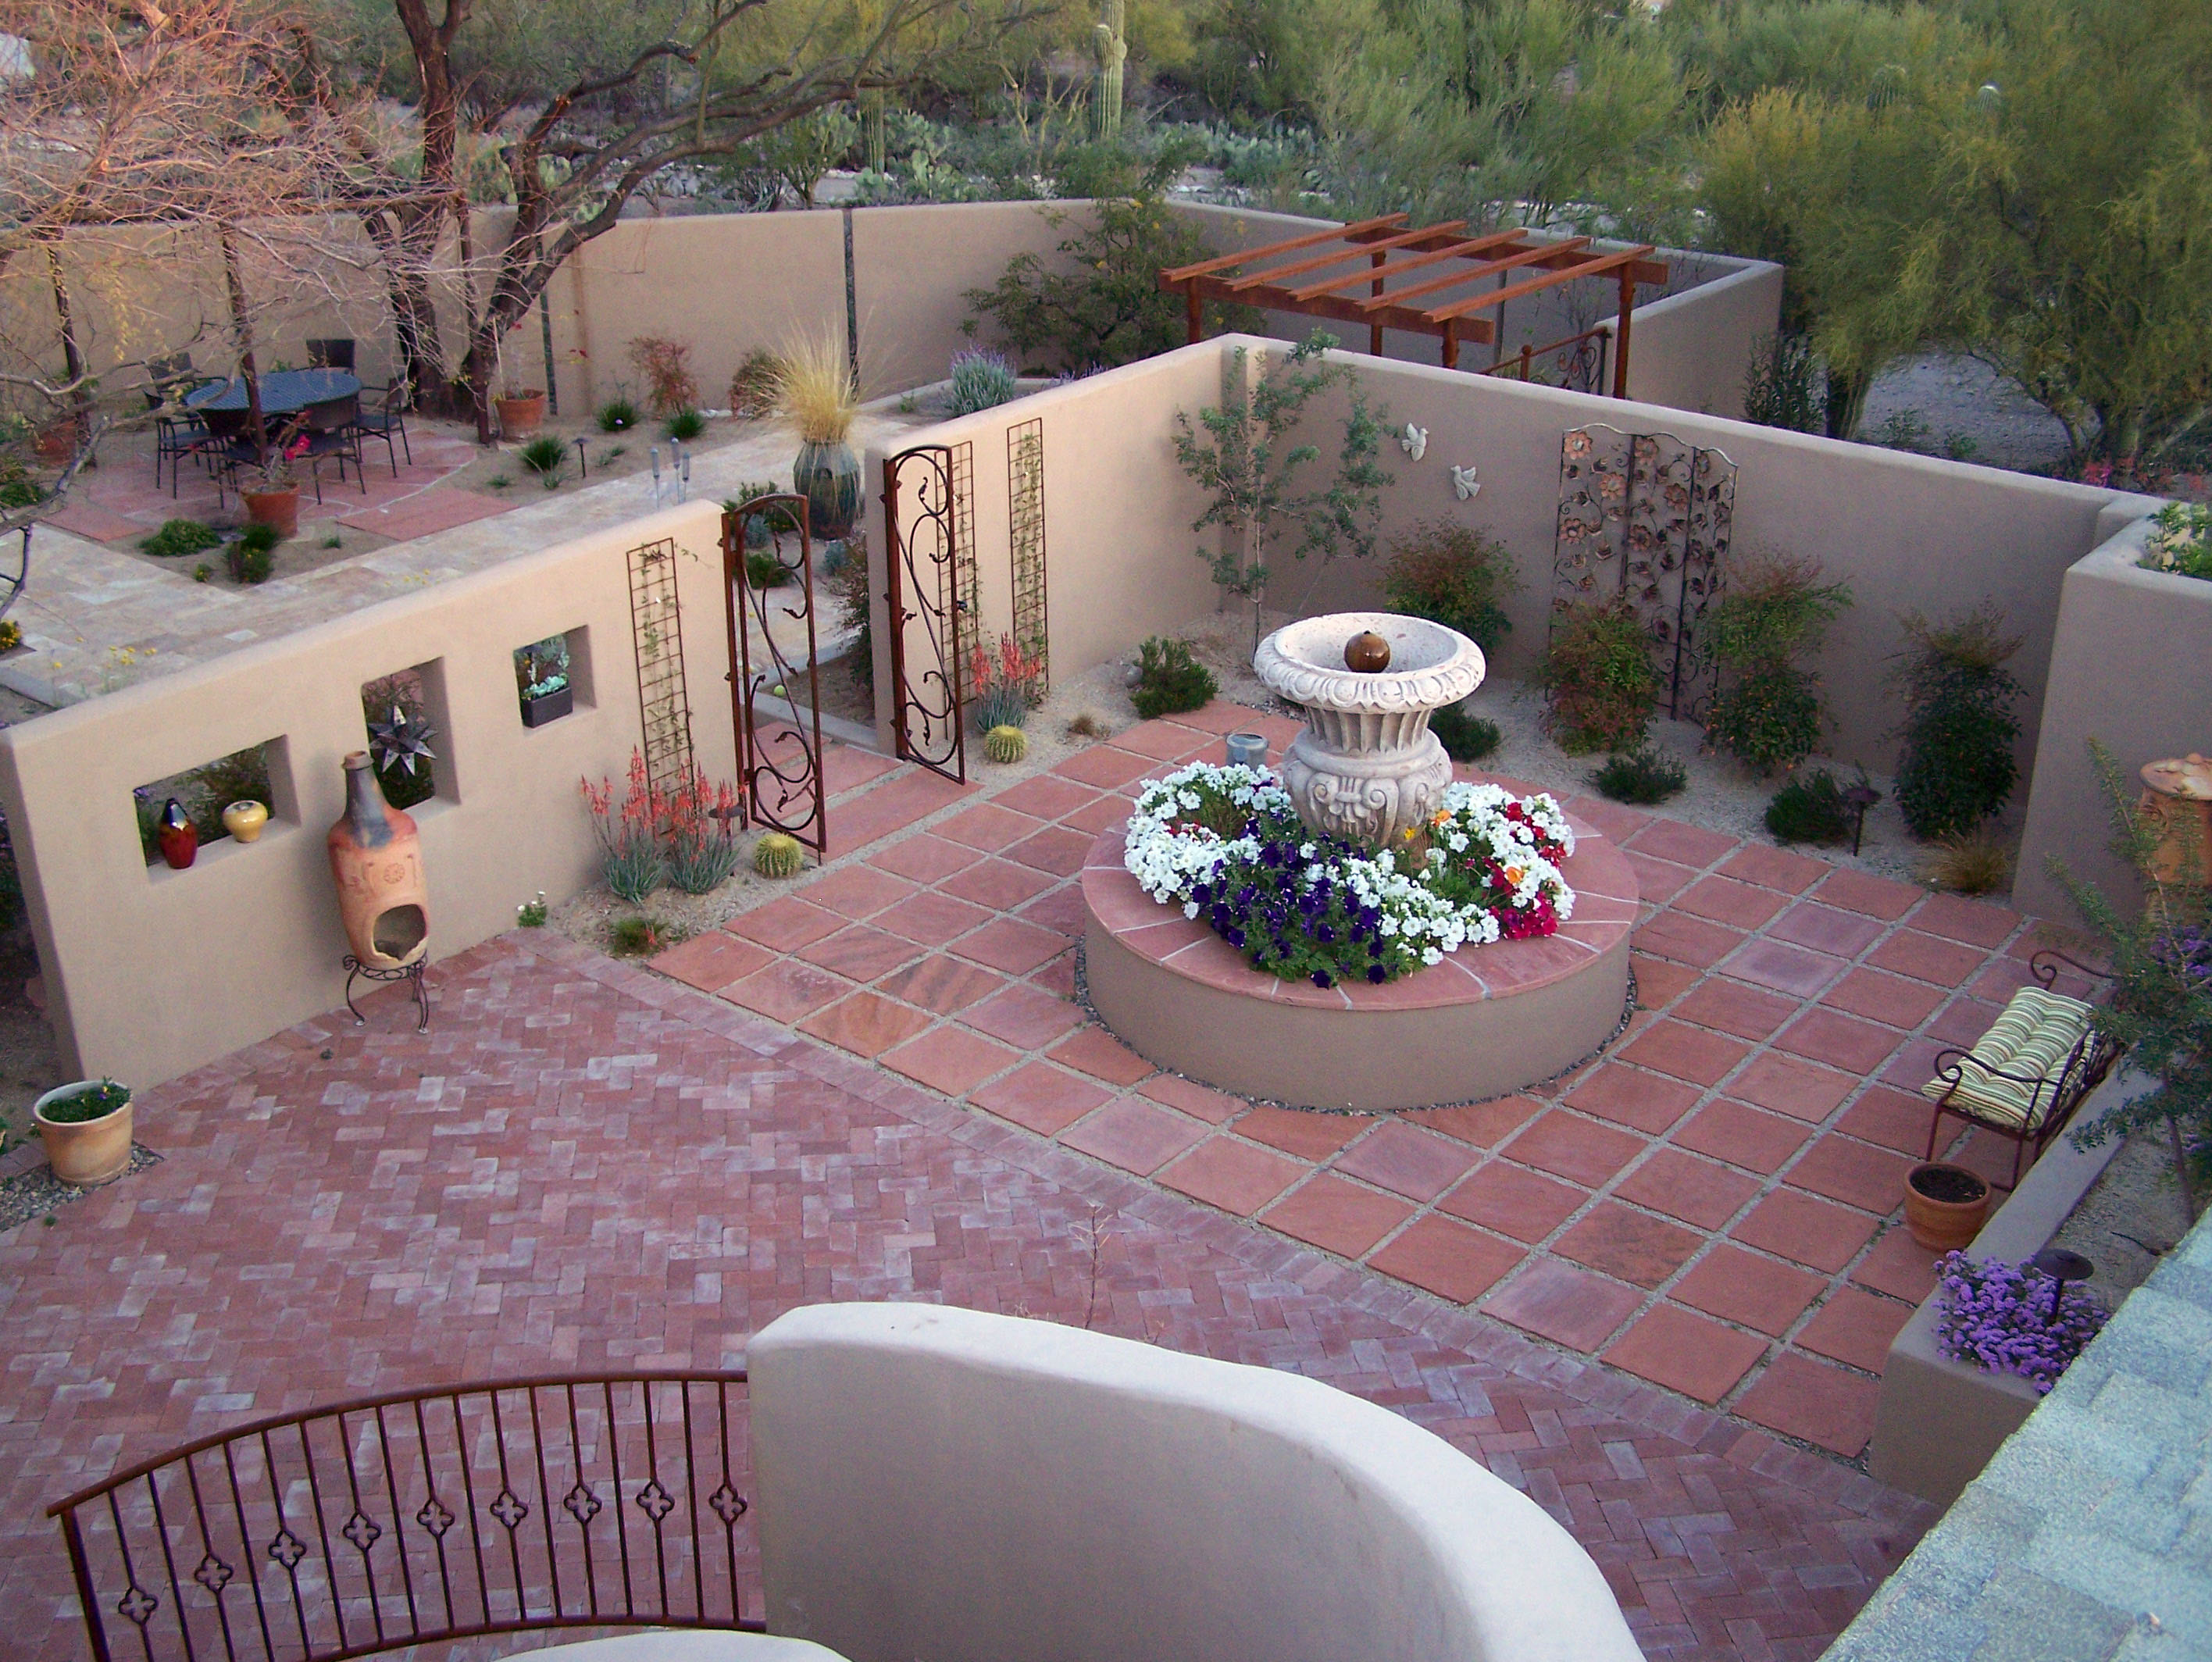 Thinking Big for a Backyard Redesign | The Lakota Group on Courtyard Patio Ideas id=42770